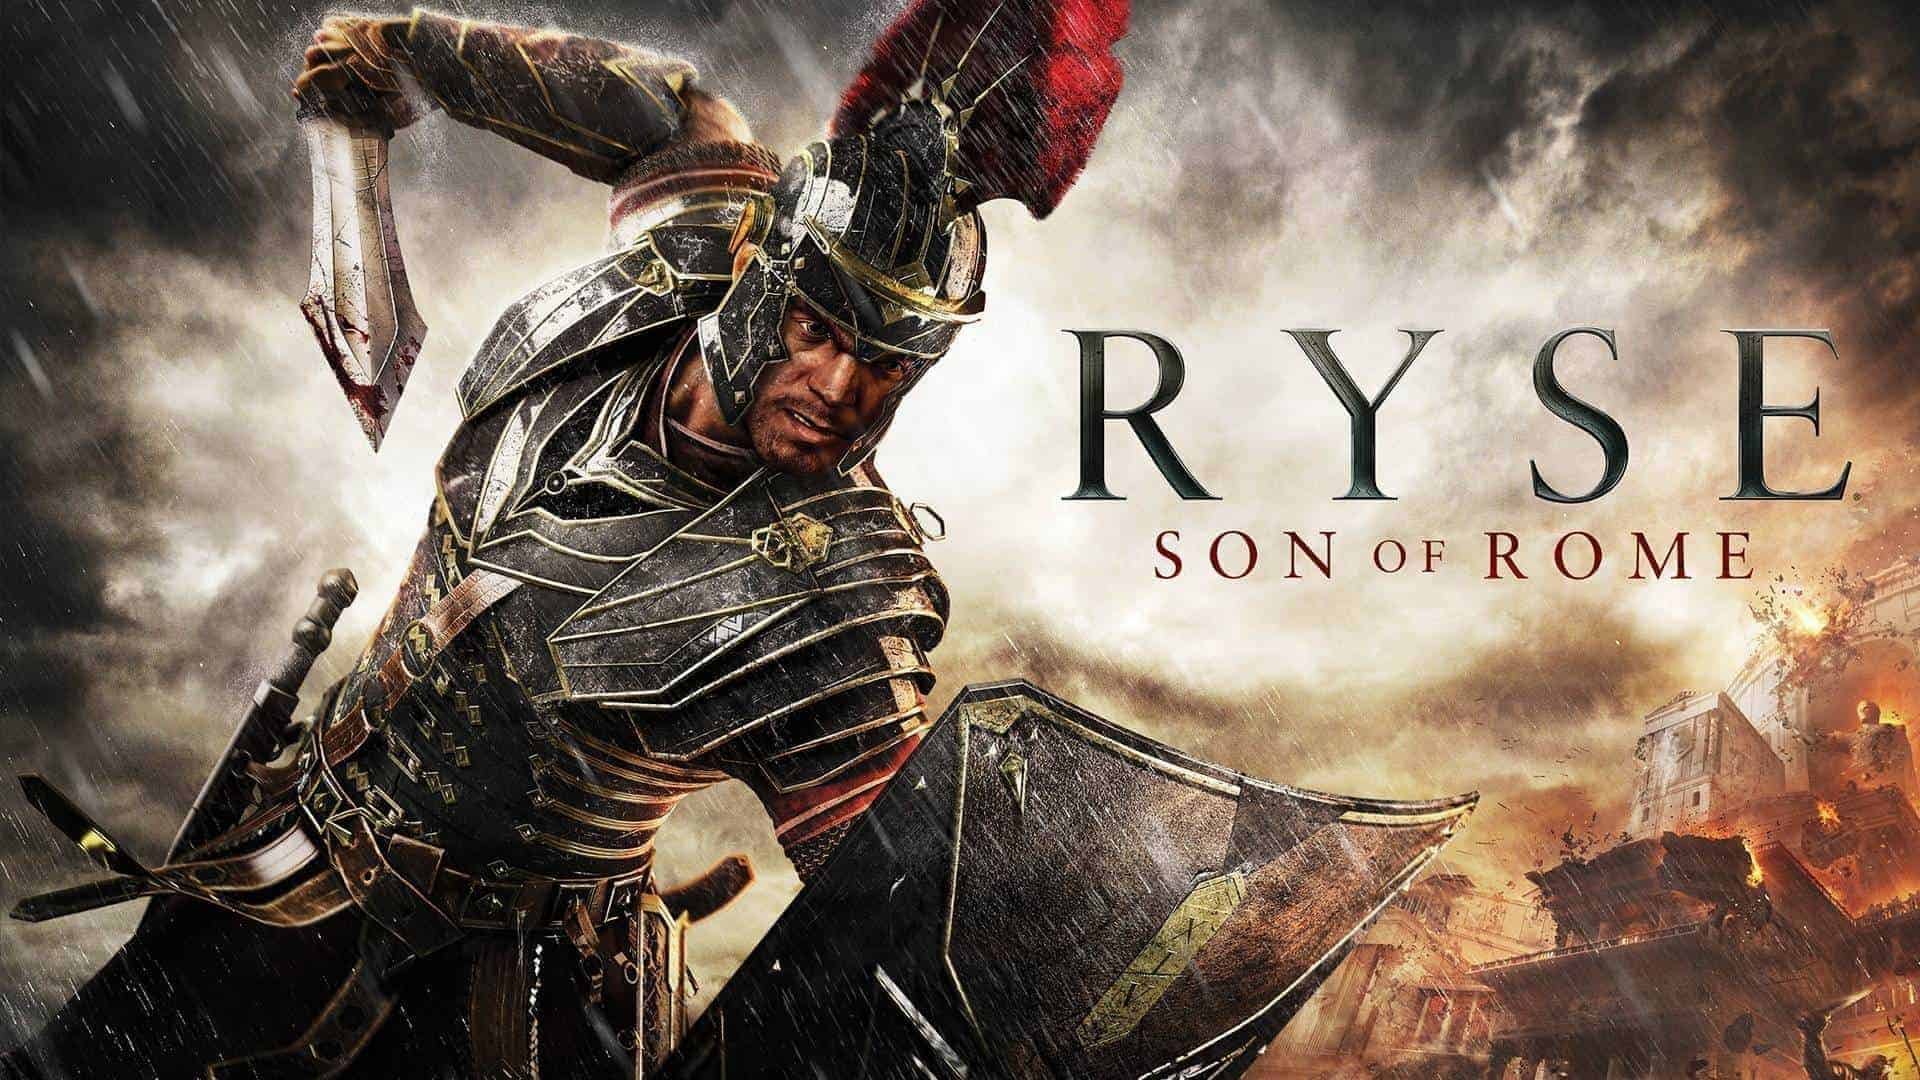 ryse-son-of-rome - Ultimate Gaming Paradise